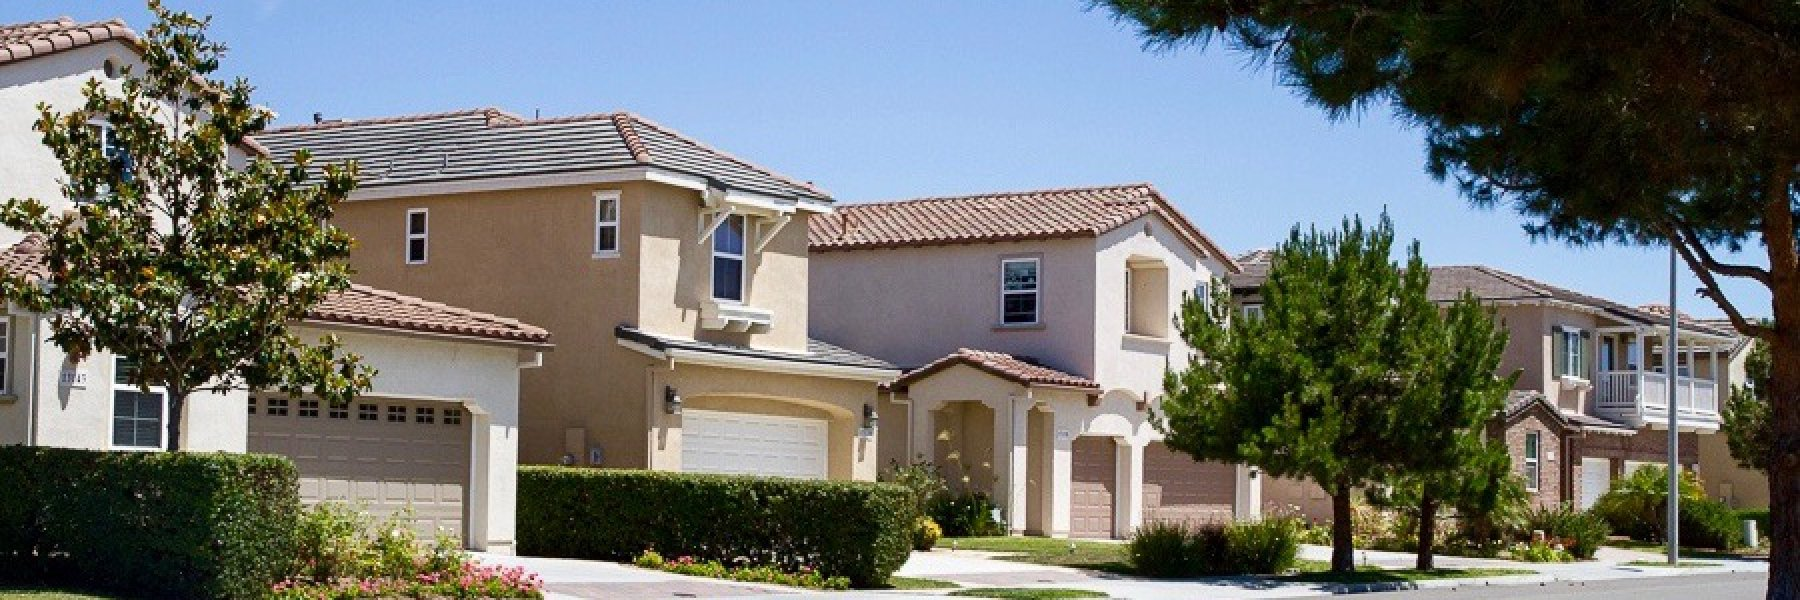 Soleil is a community of homes in San Diego California